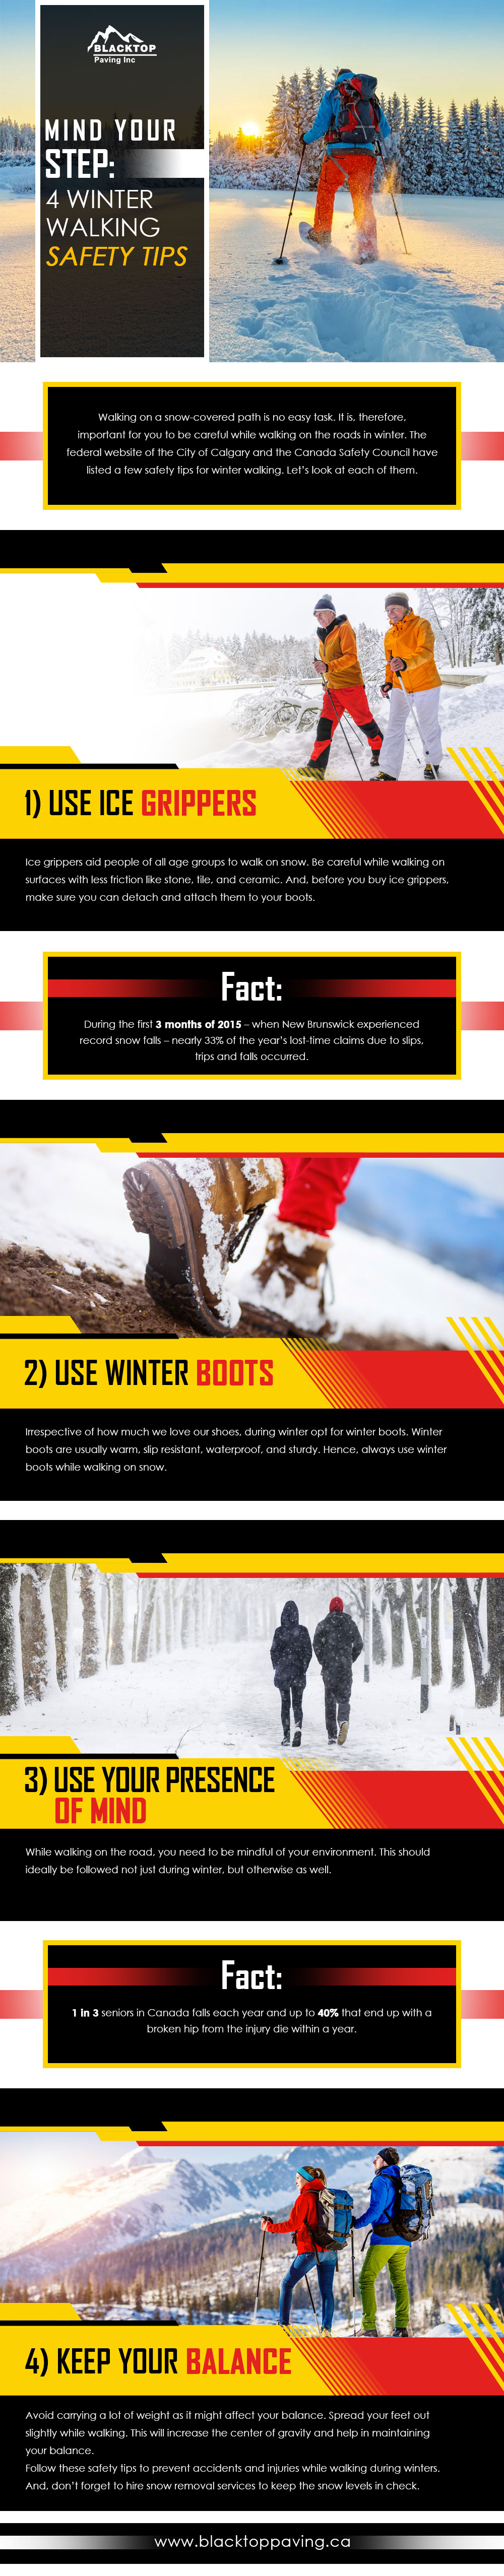 Commercial Snow Removal in Edmonton